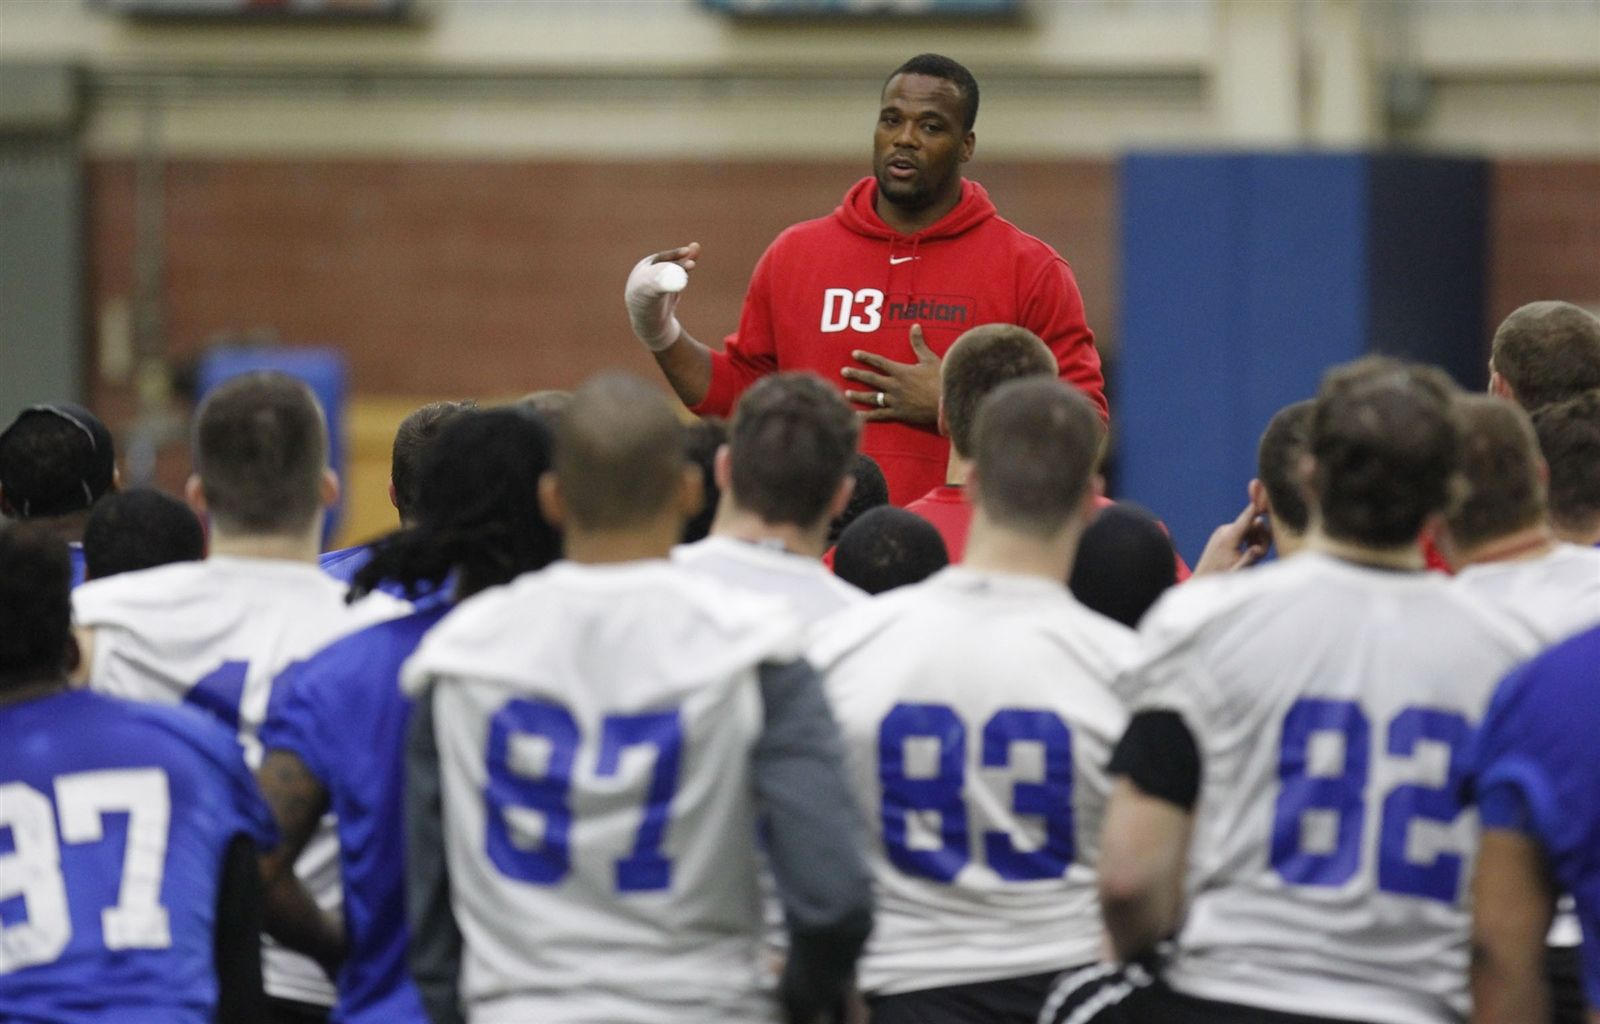 University at Buffalo football players during spring practice at the ADPRO Sports Training Center on March 27.